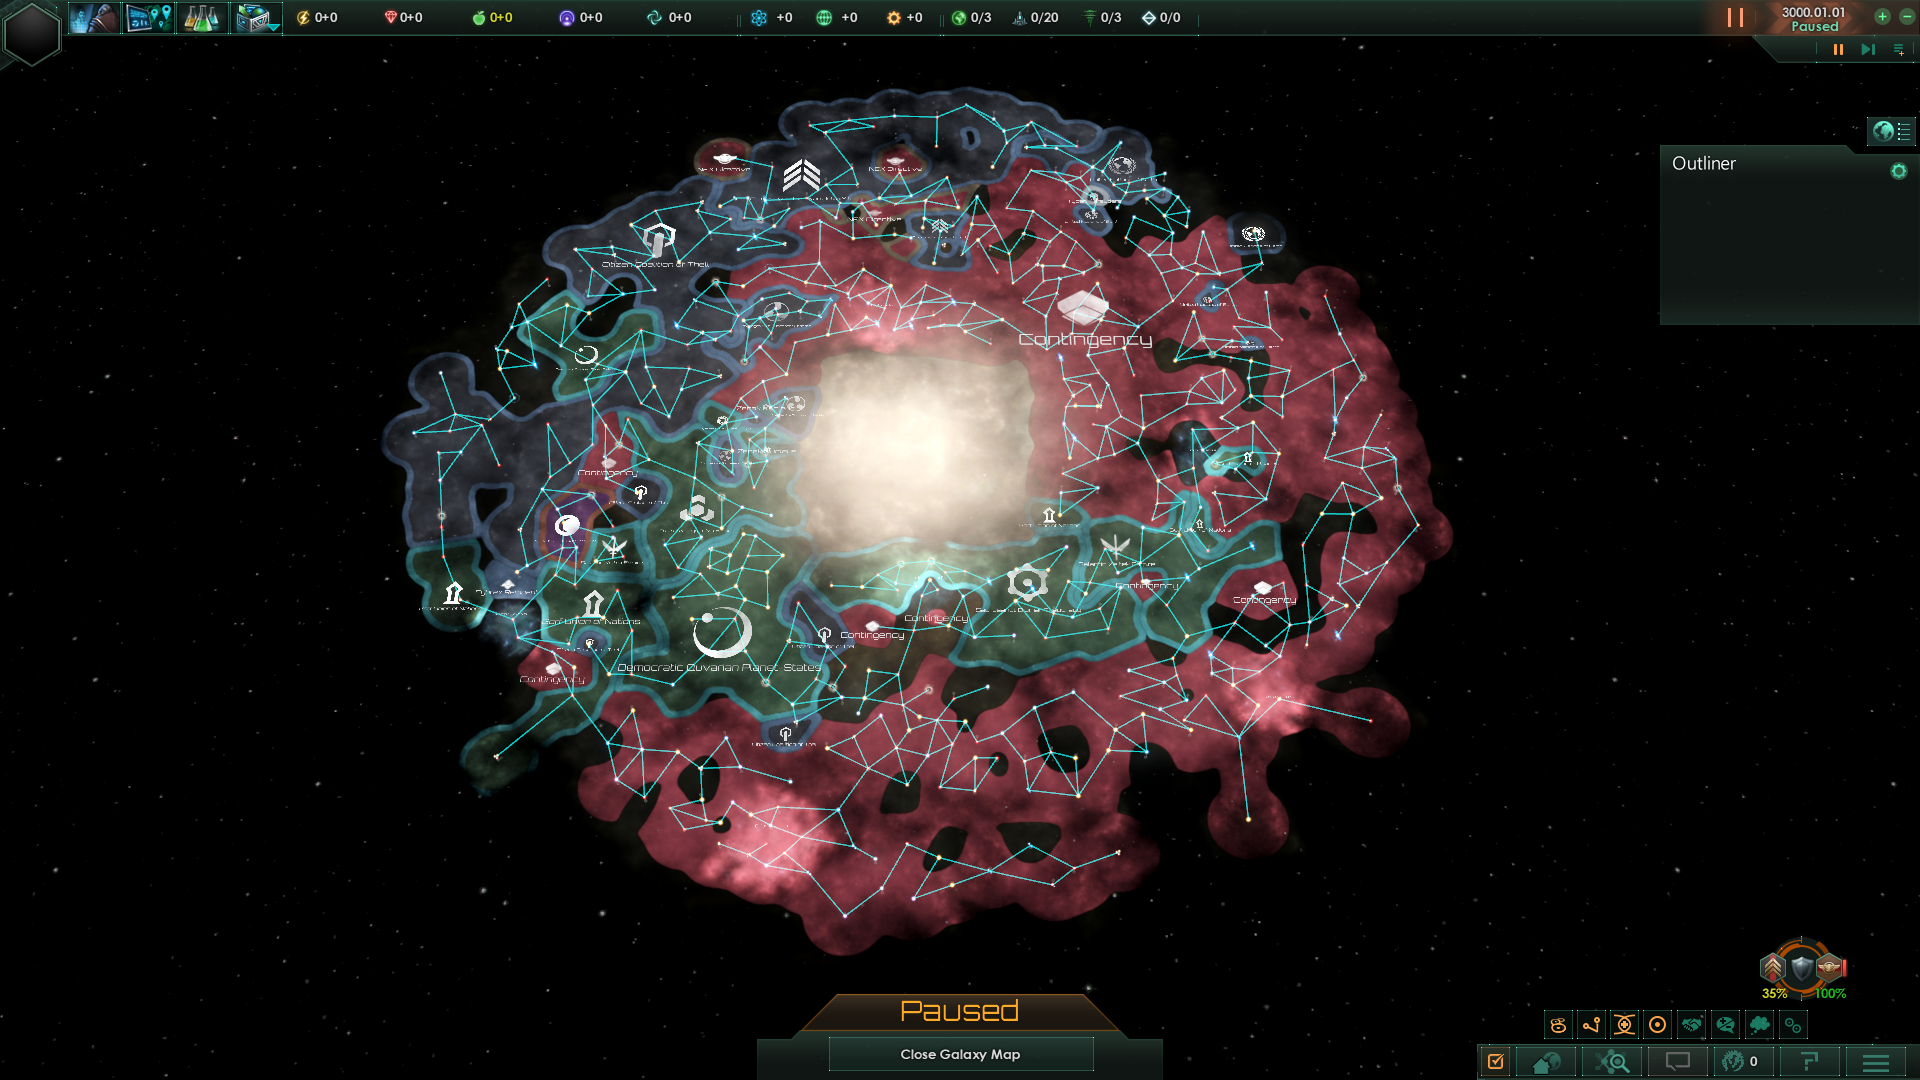 14_observer_3000_years_screen.png